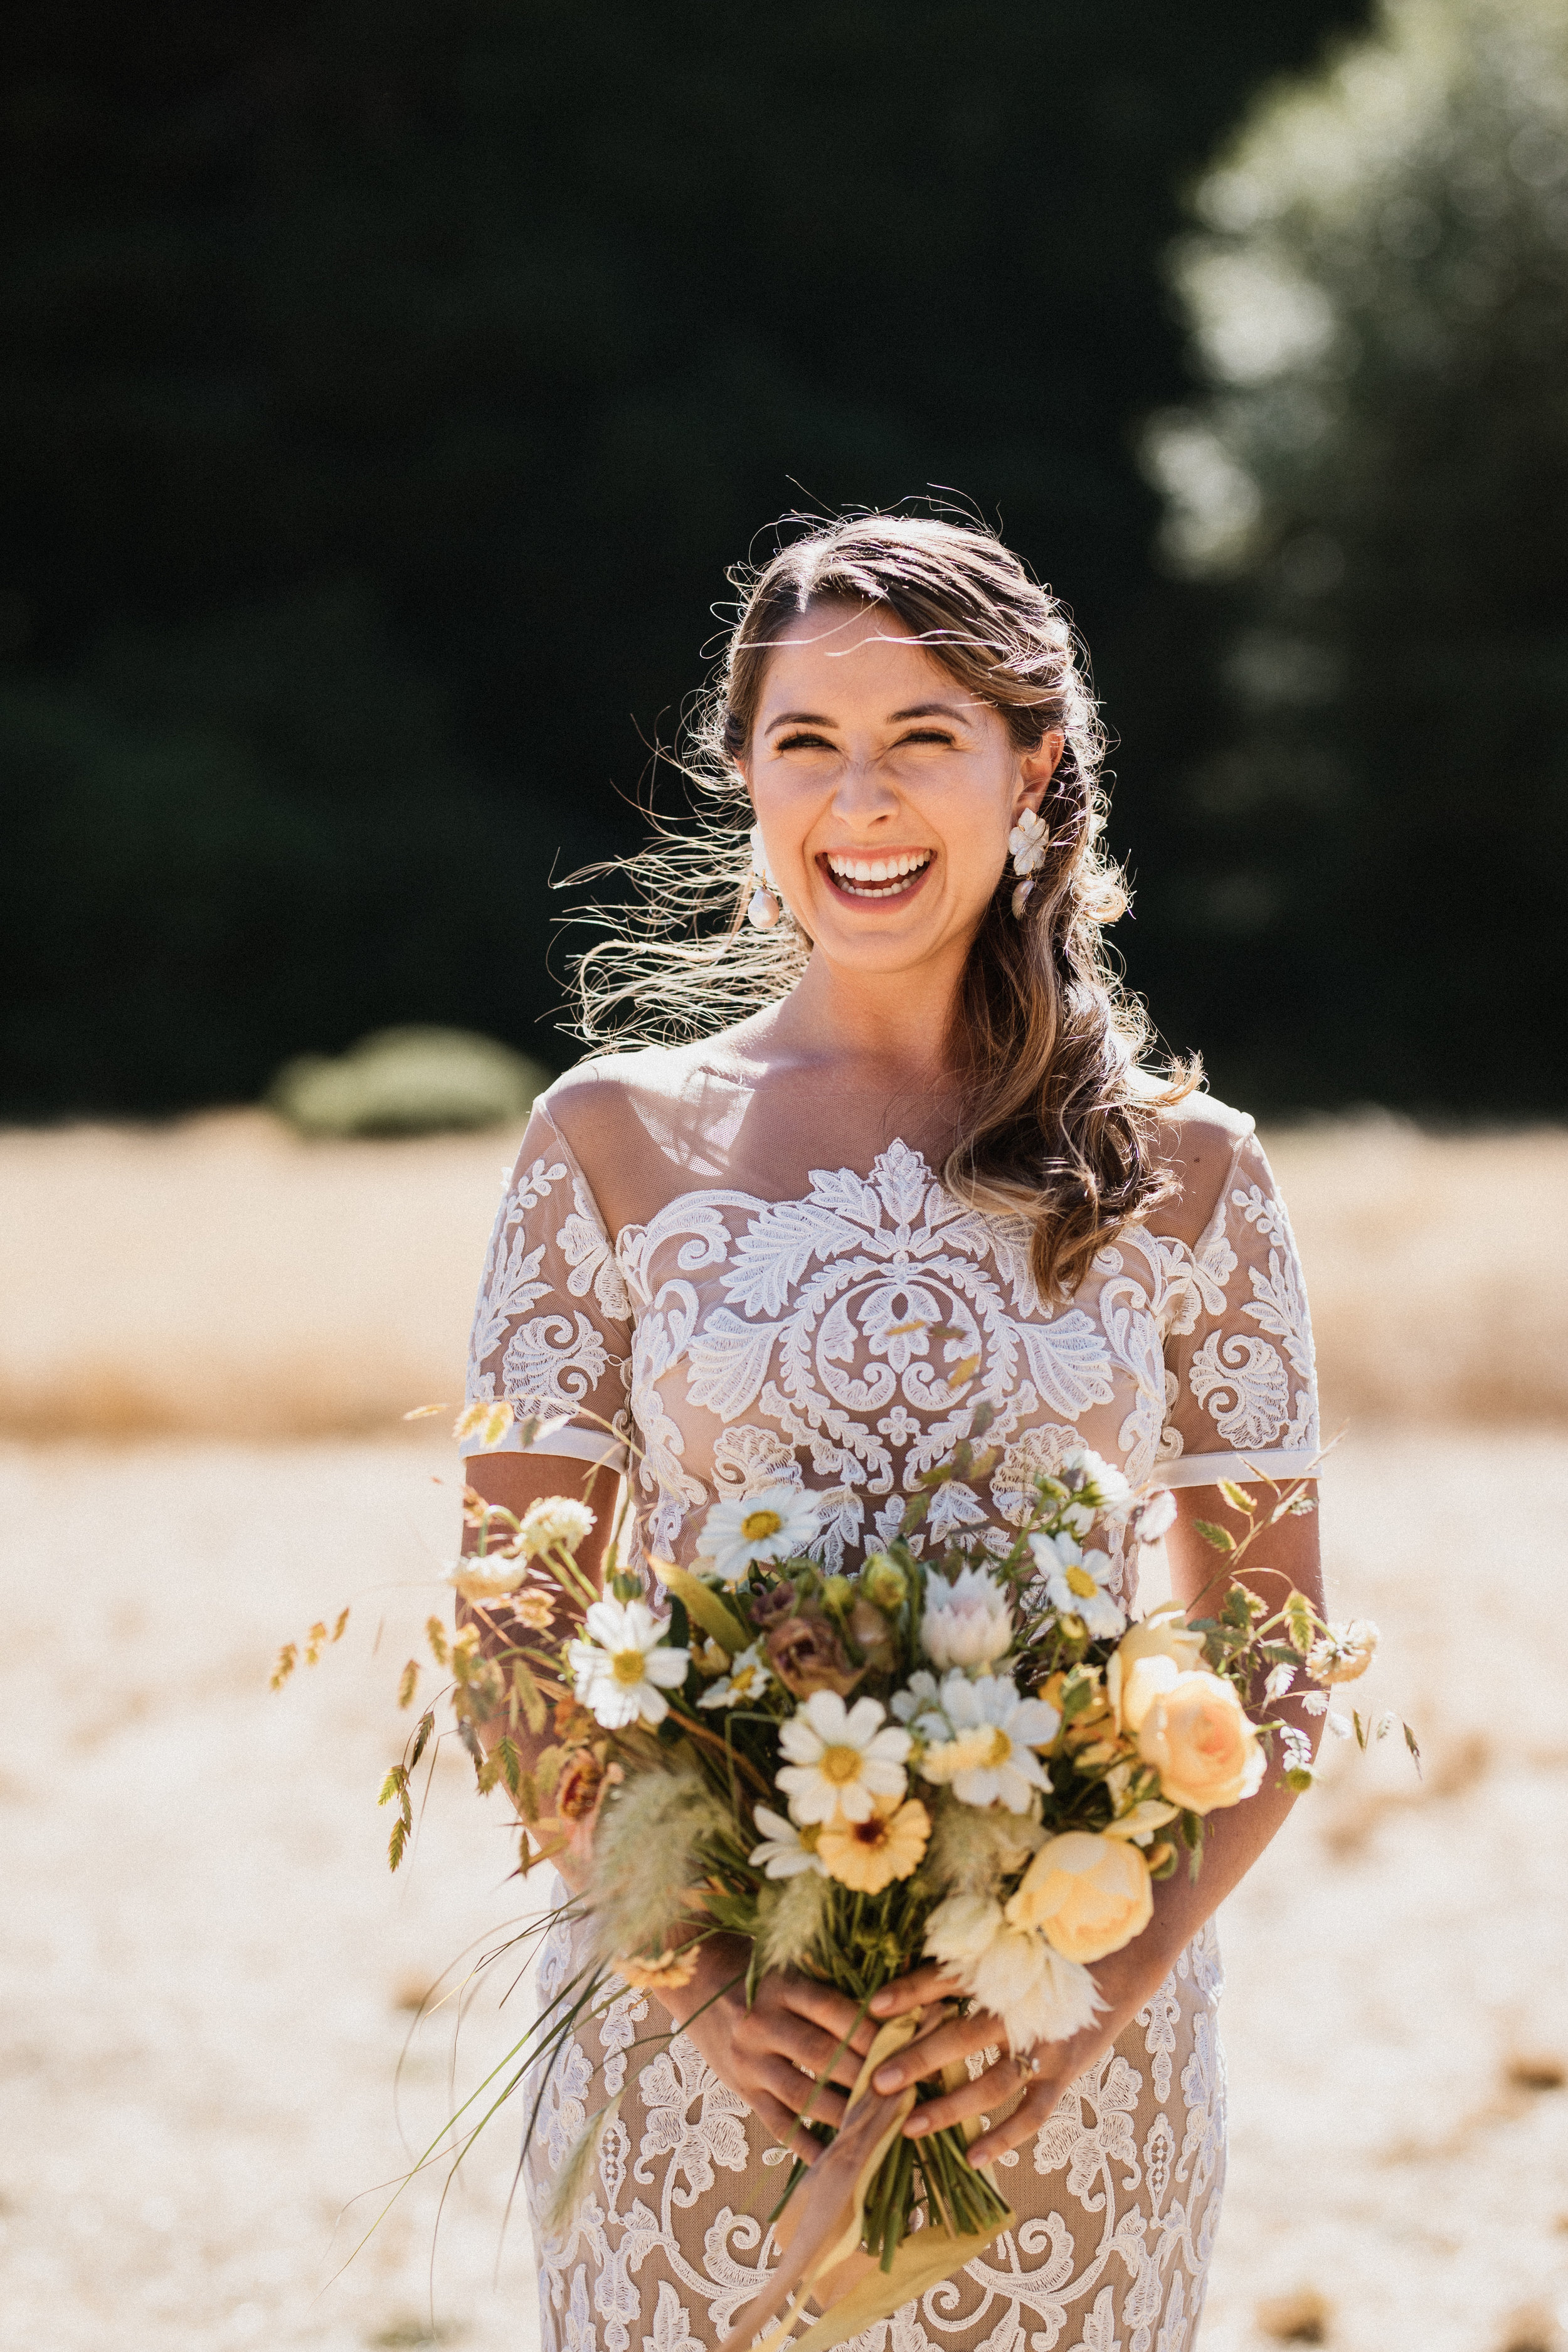 Aly_Oz_Farm_San_Francisco_Mendocino_Wedding_D+A_Bridal_hair_and_makeup_5.jpg